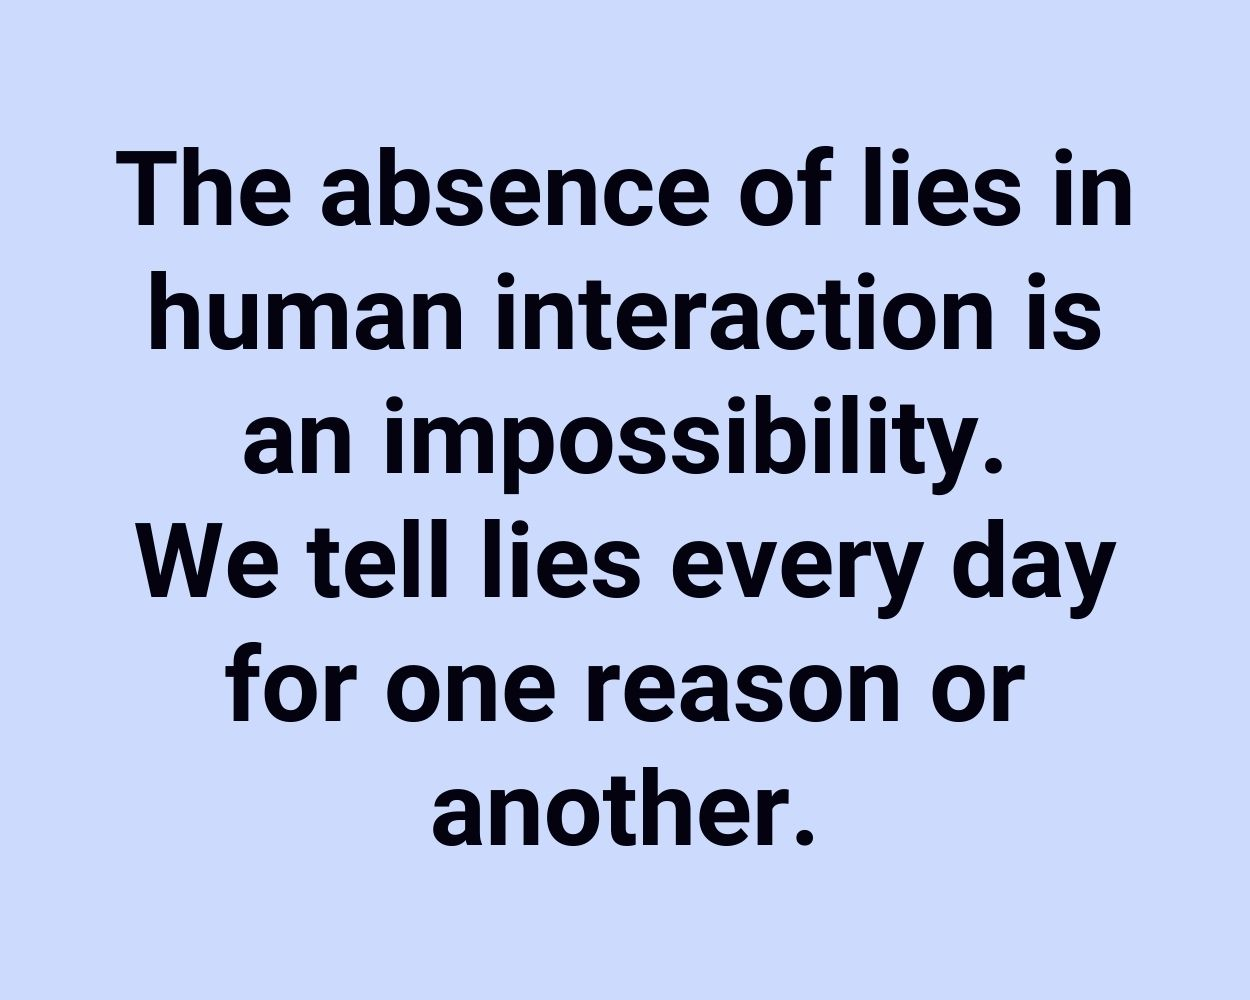 The absence of lies in human interaction is an impossibility. We tell lies every day for one reason or another.